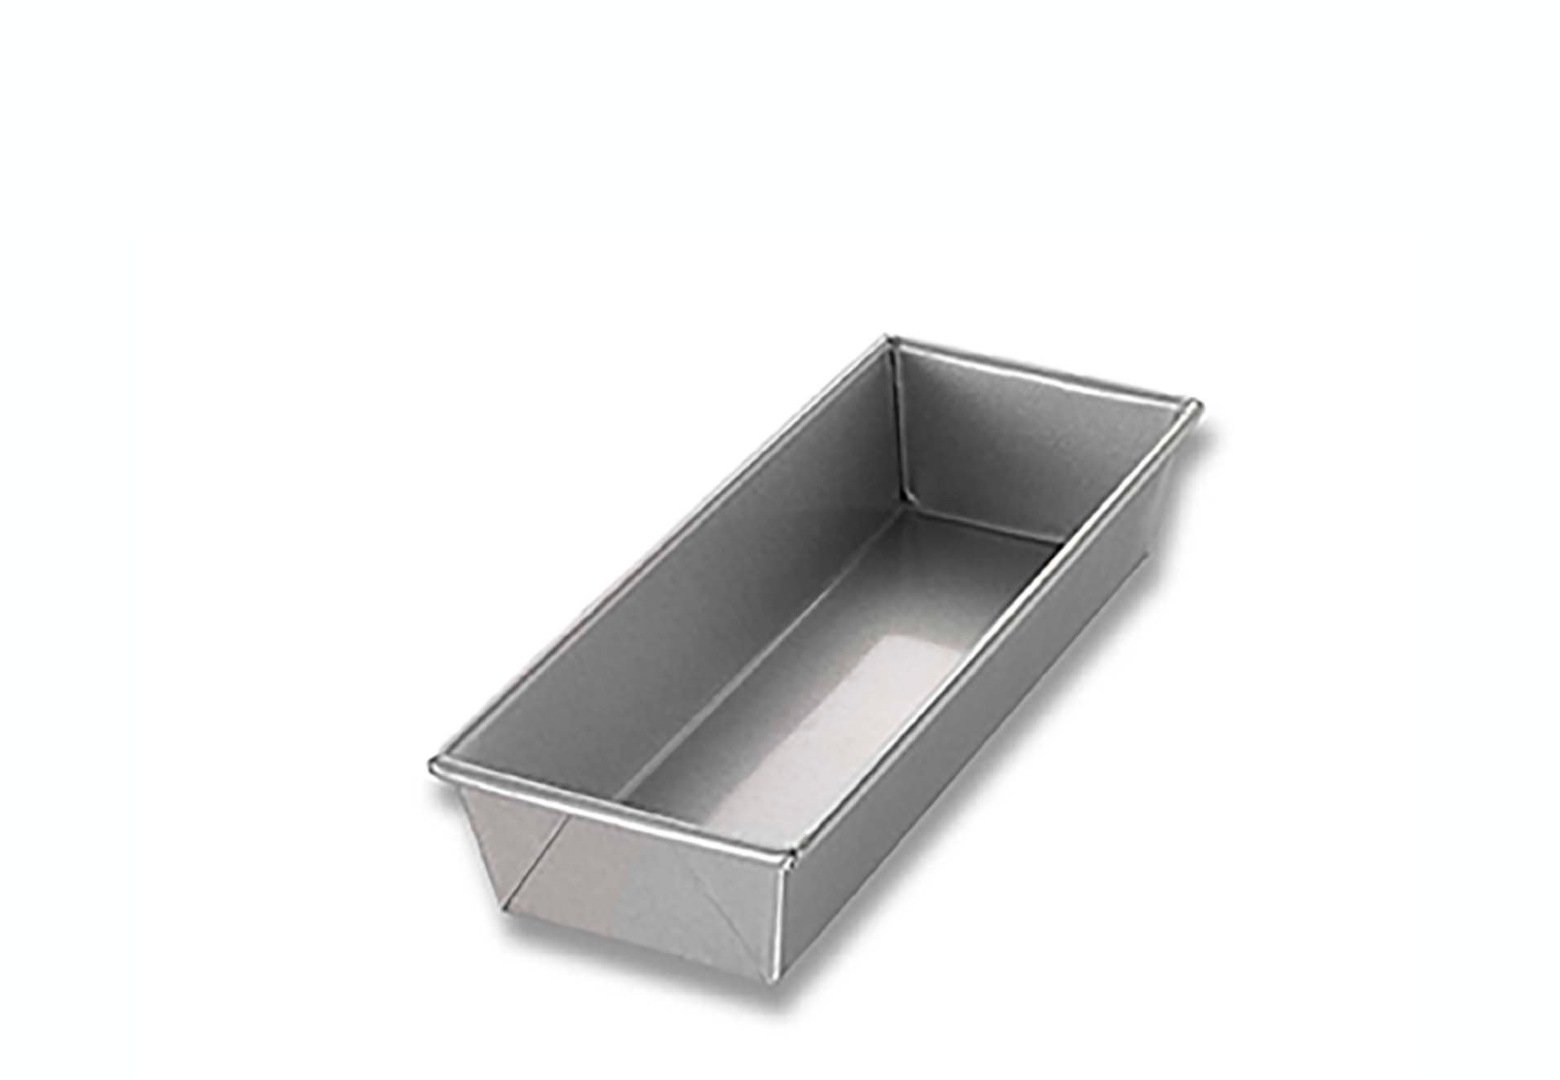 SINGLE OPEN TOP BREAD PAN